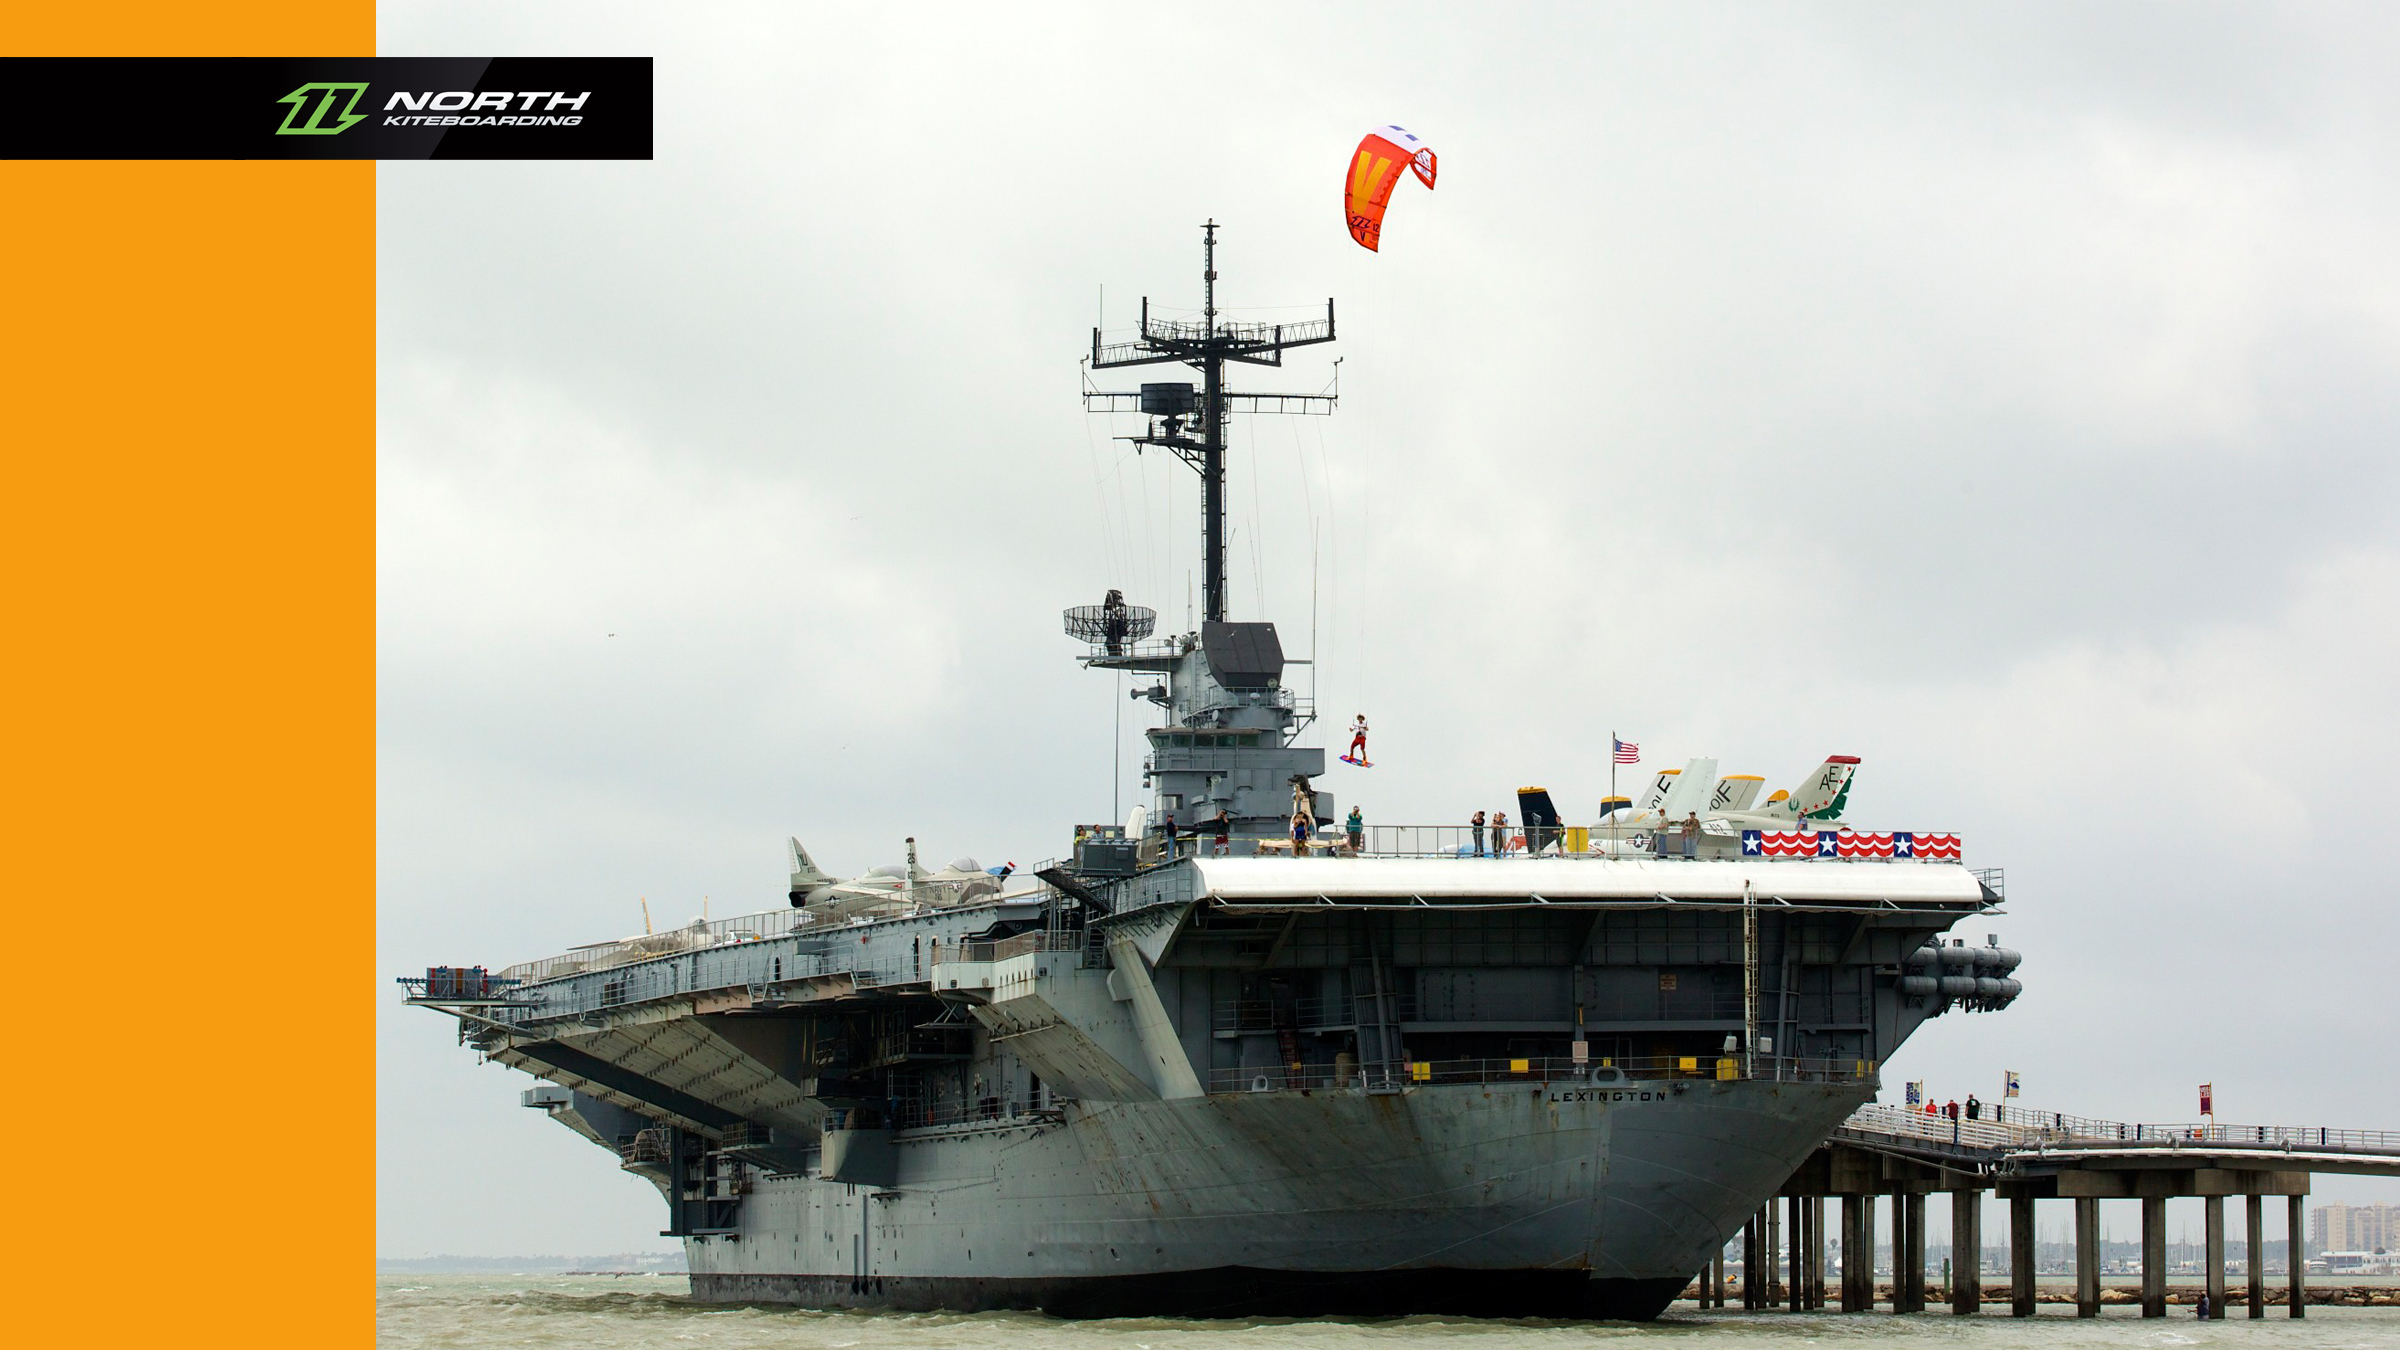 kitesurf wallpaper image - Jumping off an aircraft carrier with a North Vegas kite - in resolution: High Definition - HD 16:9 2400 X 1350